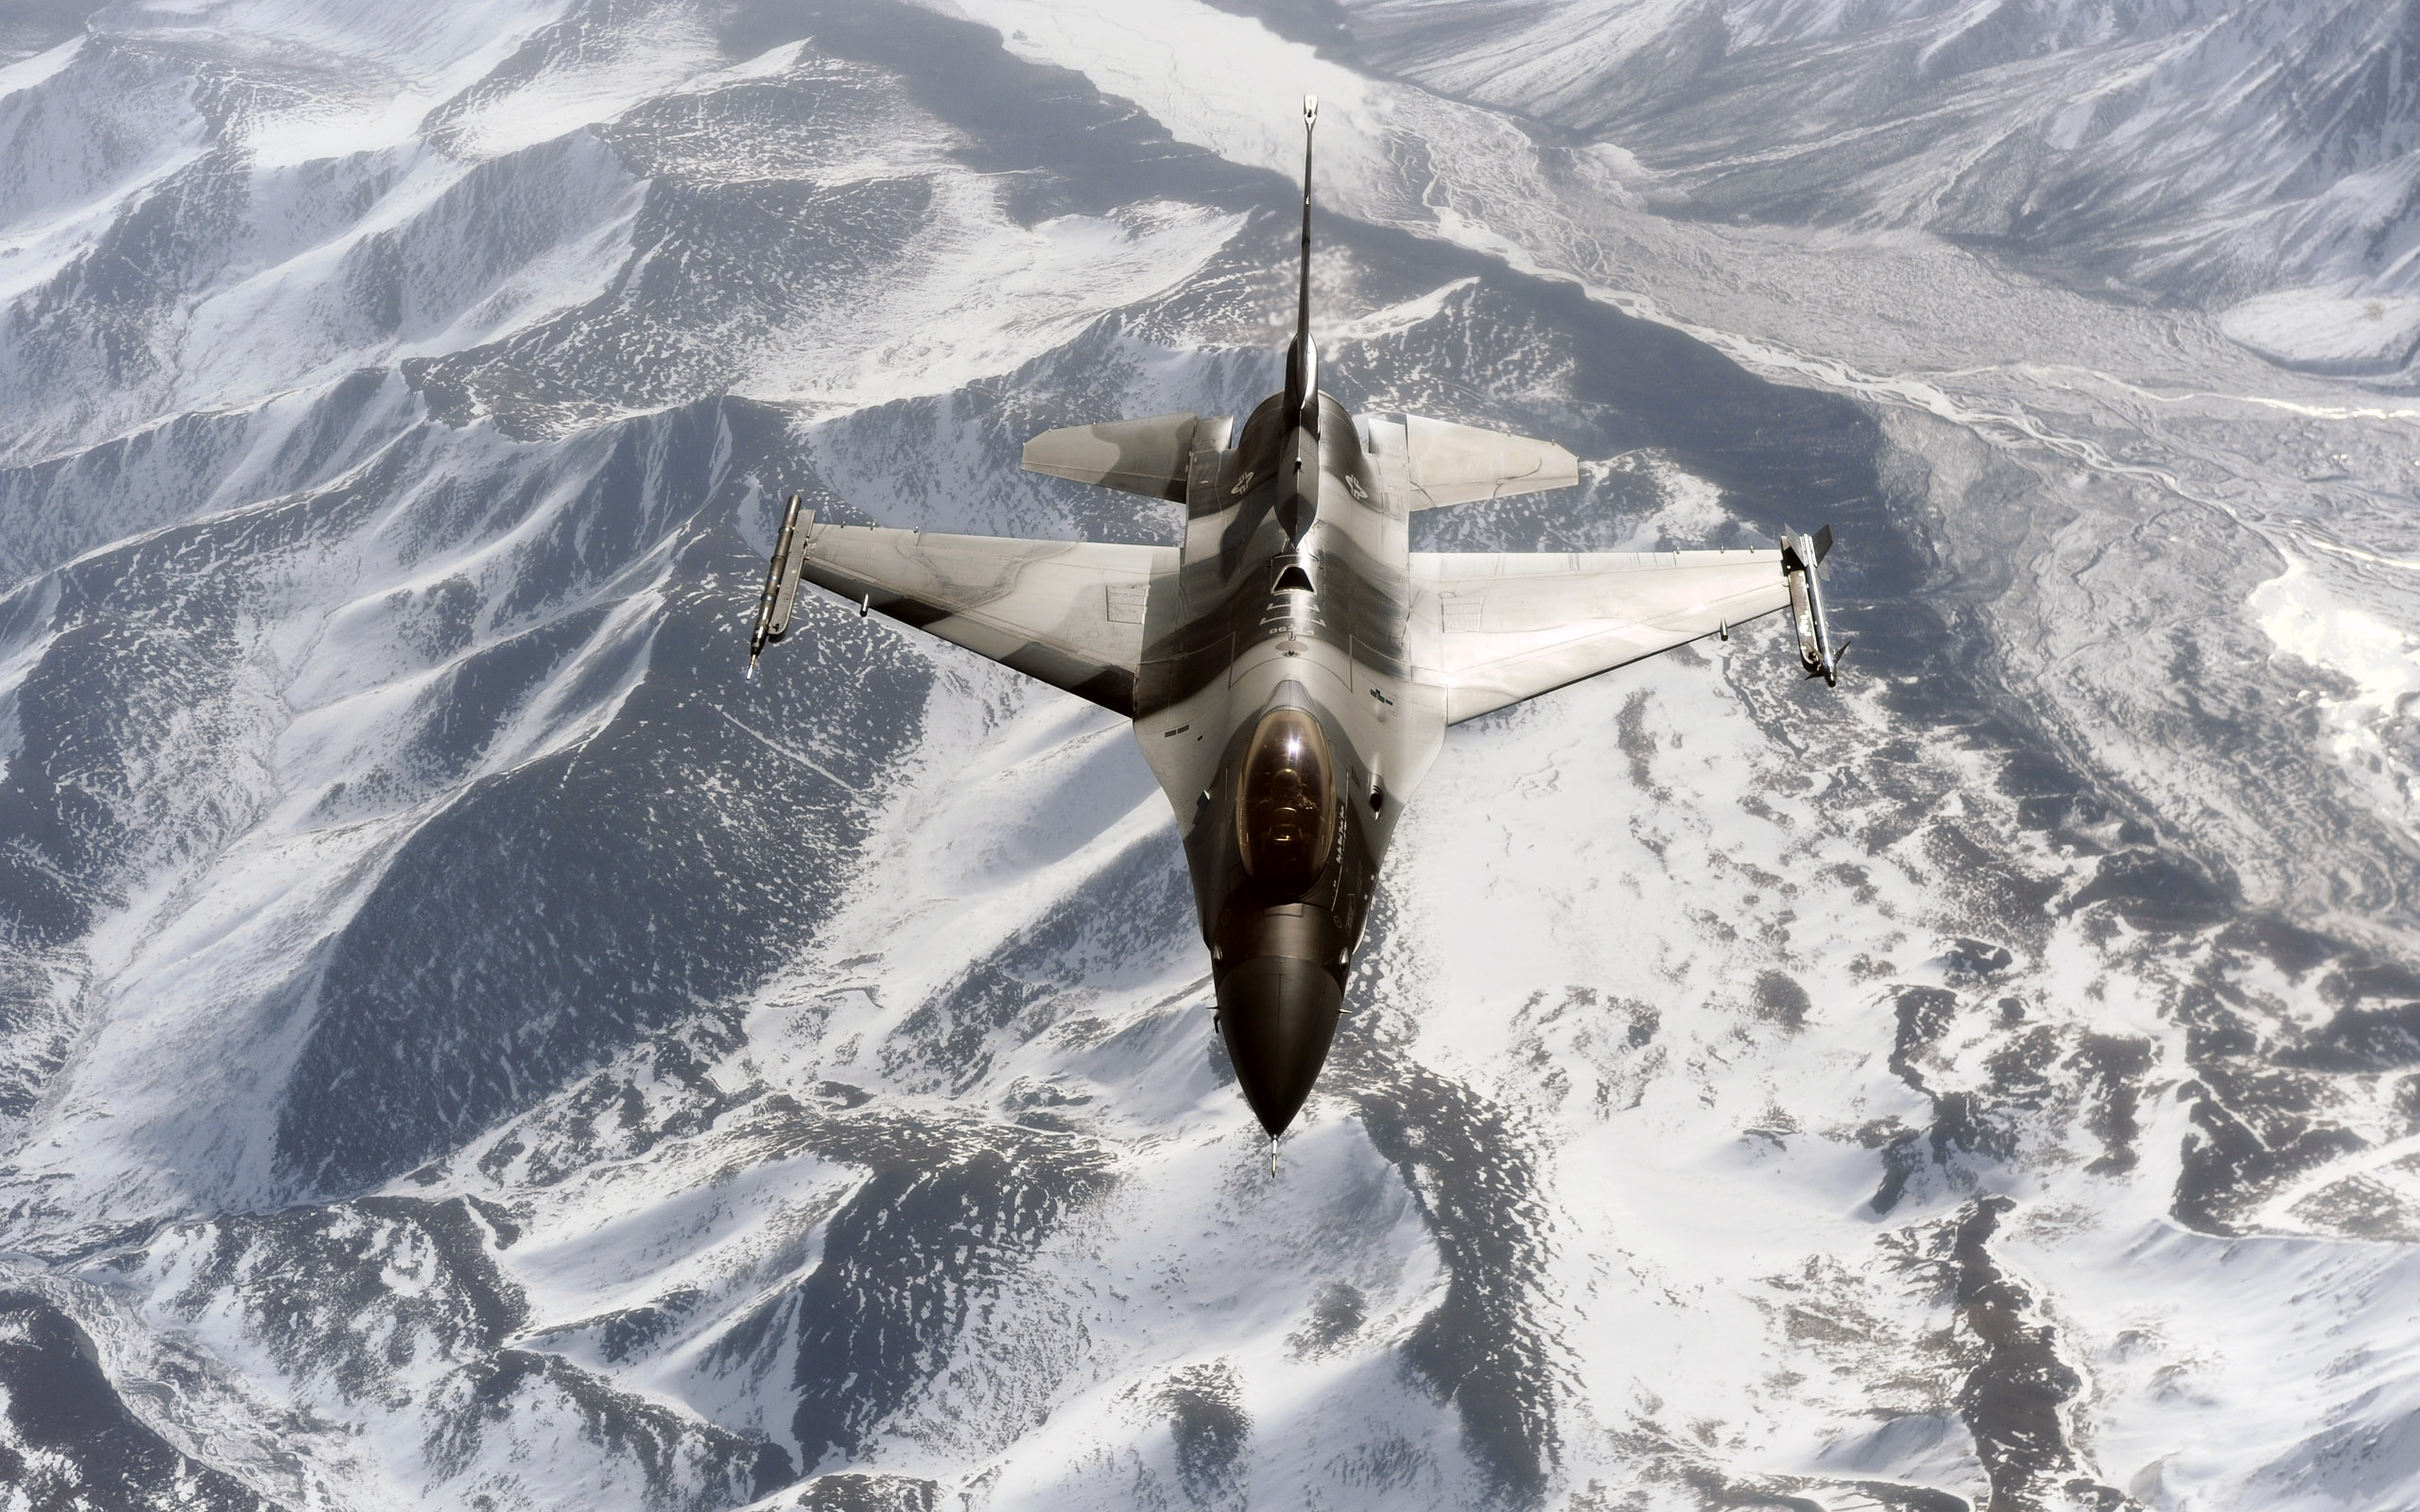 F 16 Aggressor Over the Joint Pacific Alaskan Range9720415454 - F 16 Aggressor Over the Joint Pacific Alaskan Range - Range, Pacific, Over, McGuire, Joint, Alaskan, Aggressor